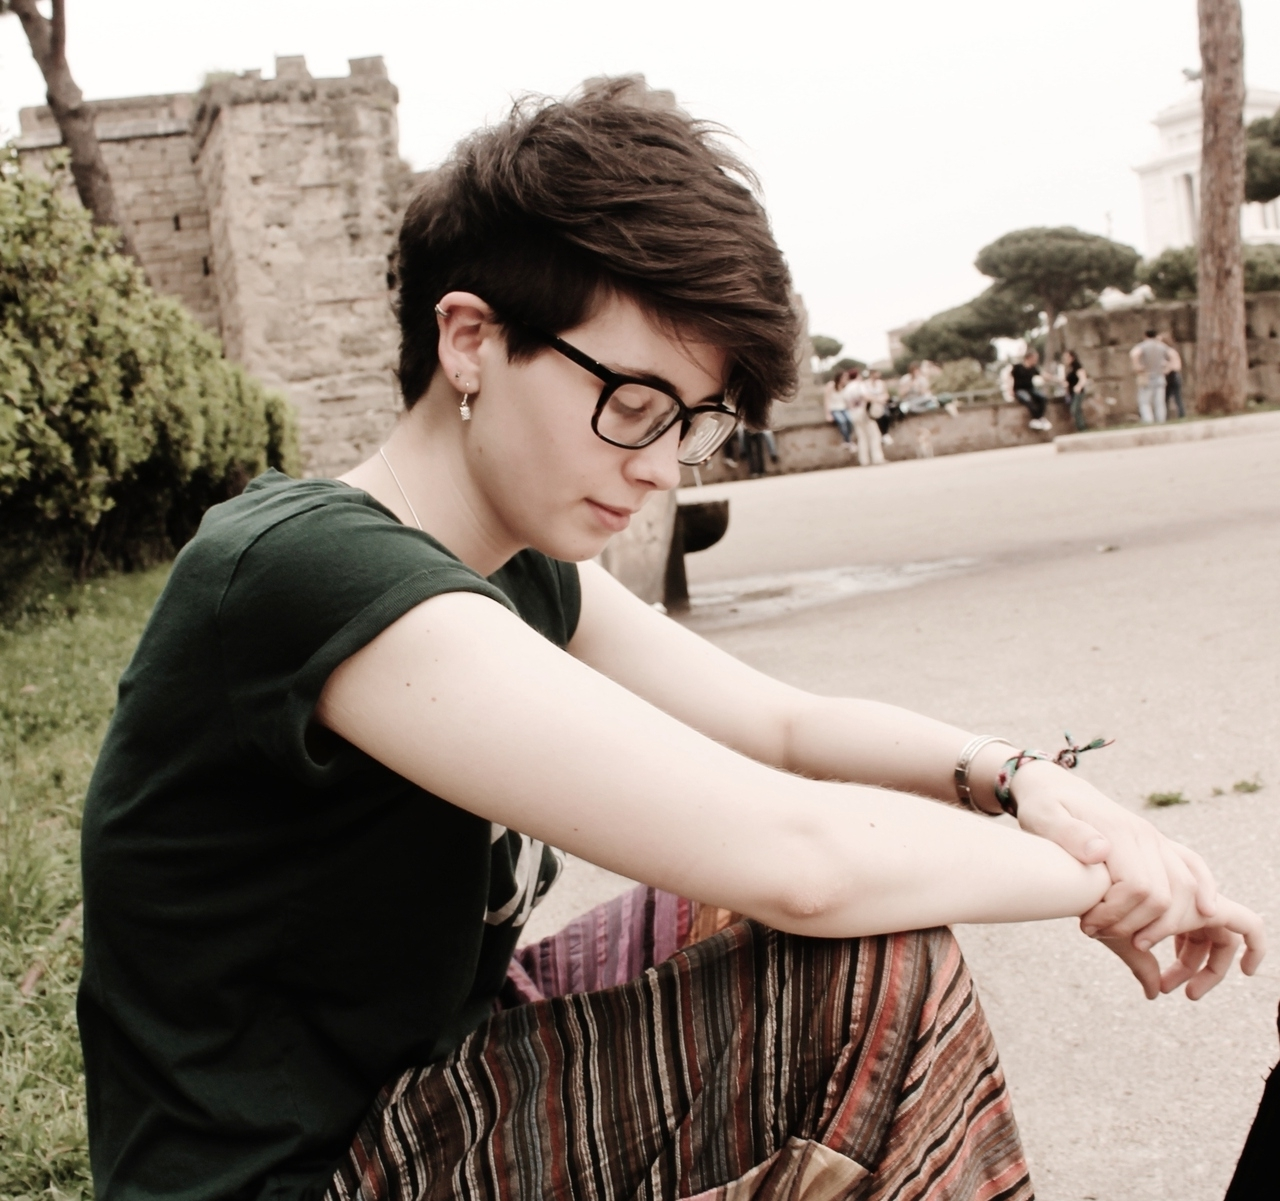 Silvia Del Barrio Gorines Nunez | Potentials | Pinterest | Haircut Throughout Most Current Punk Pixie Hairstyles (View 12 of 15)